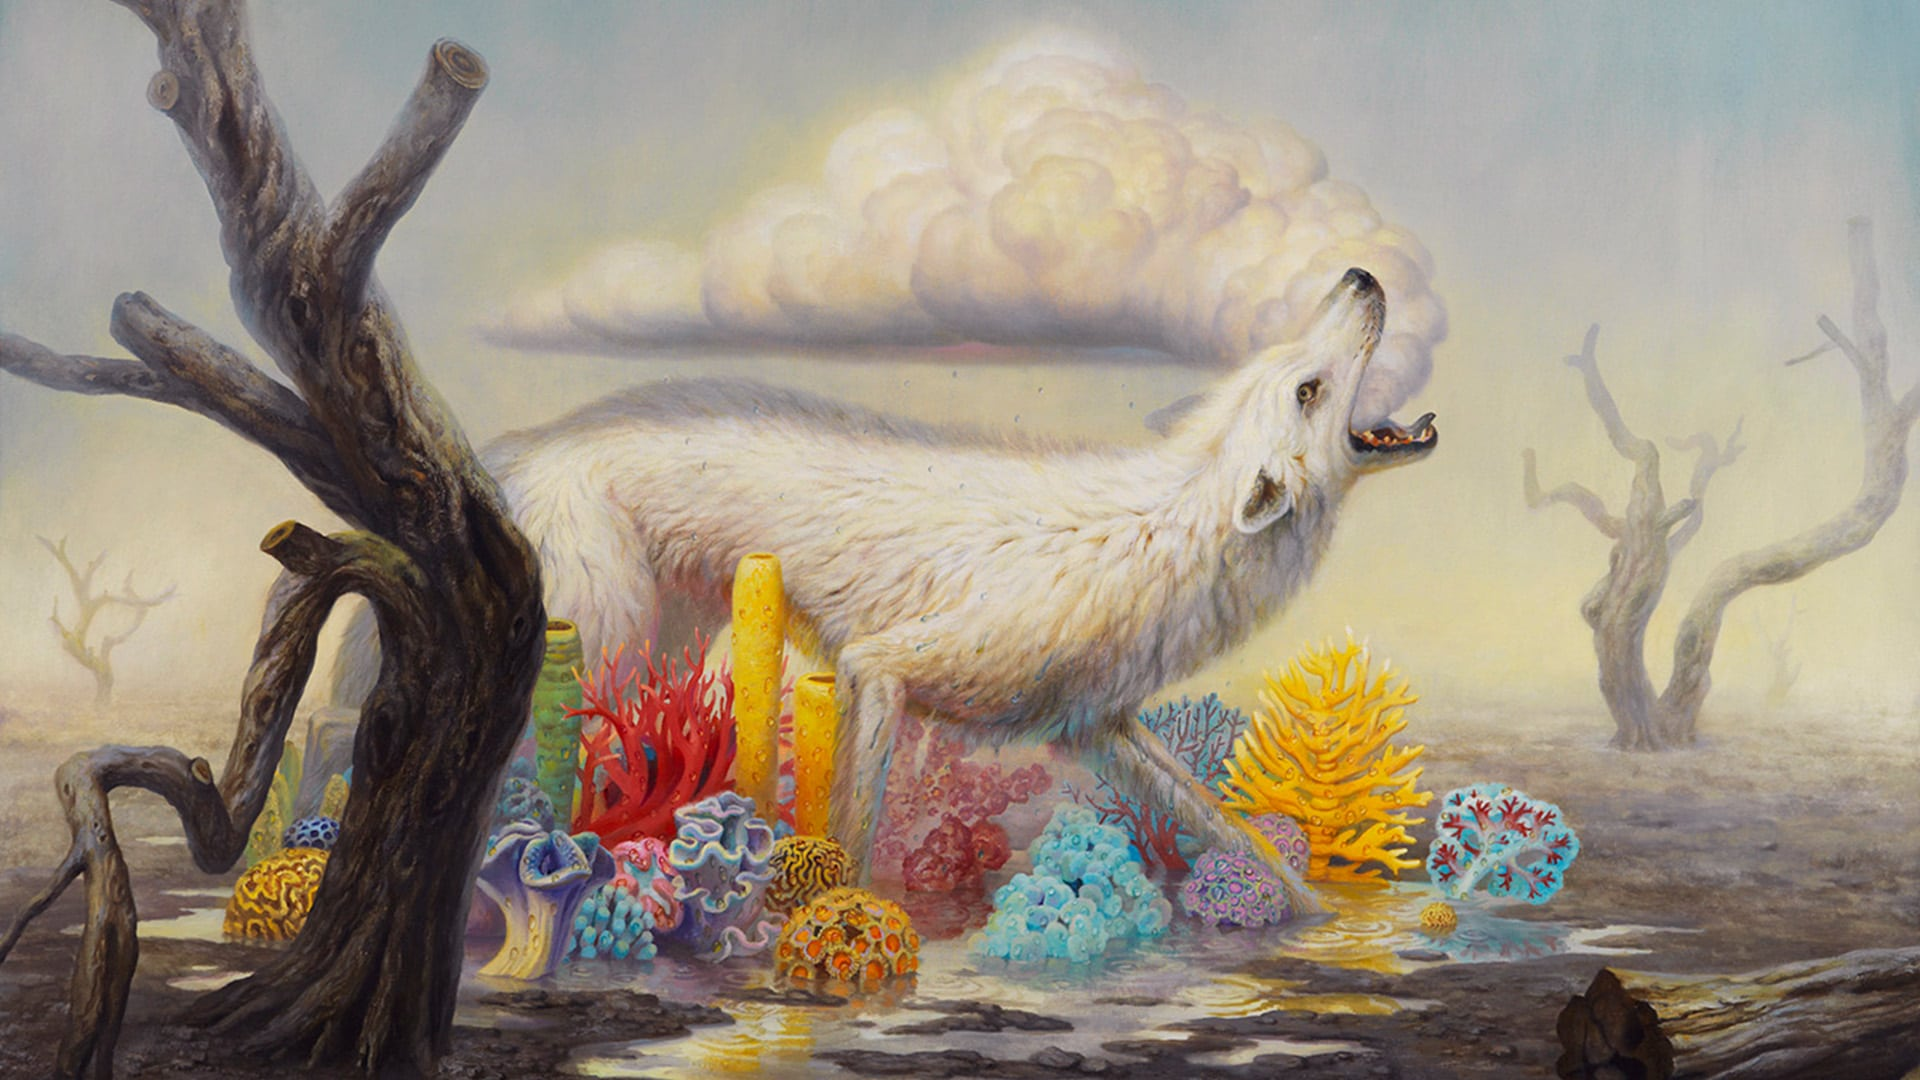 Rival Sons - Thundering Voices